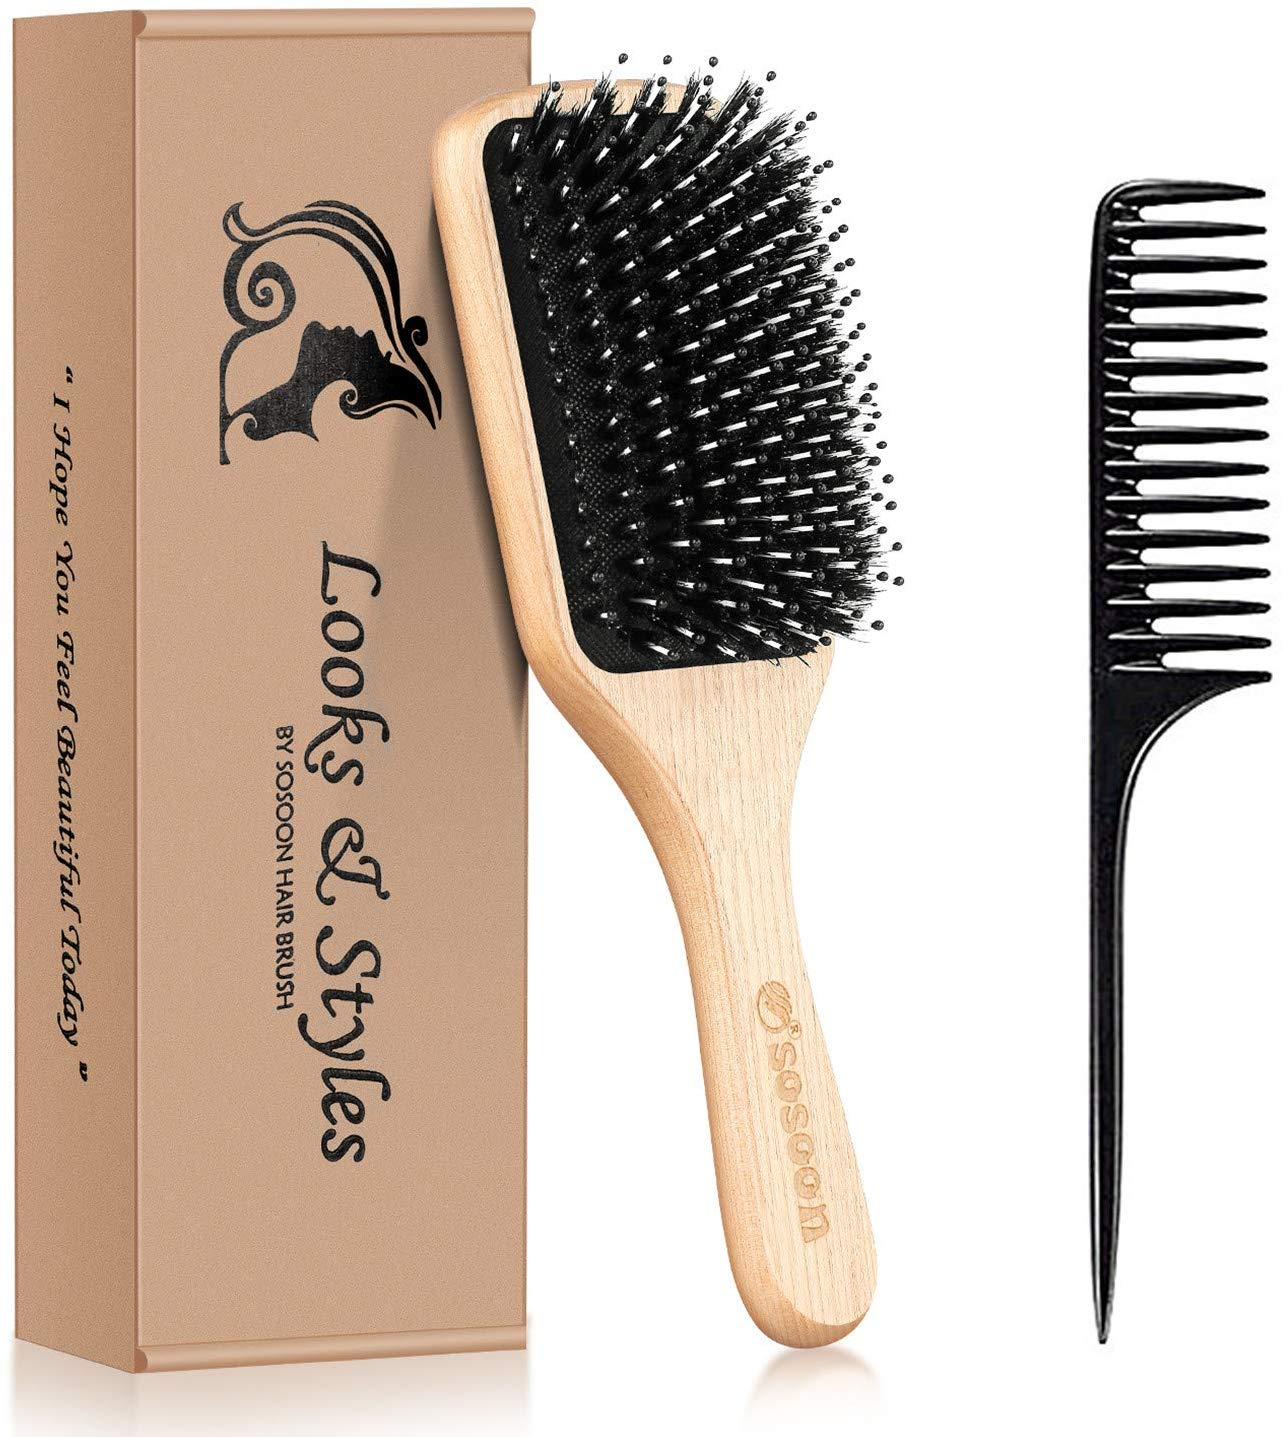 60% off Boar Bristle Paddle Hairbrush Set for Long Thick Curly Wavy Dry or Damaged Hair